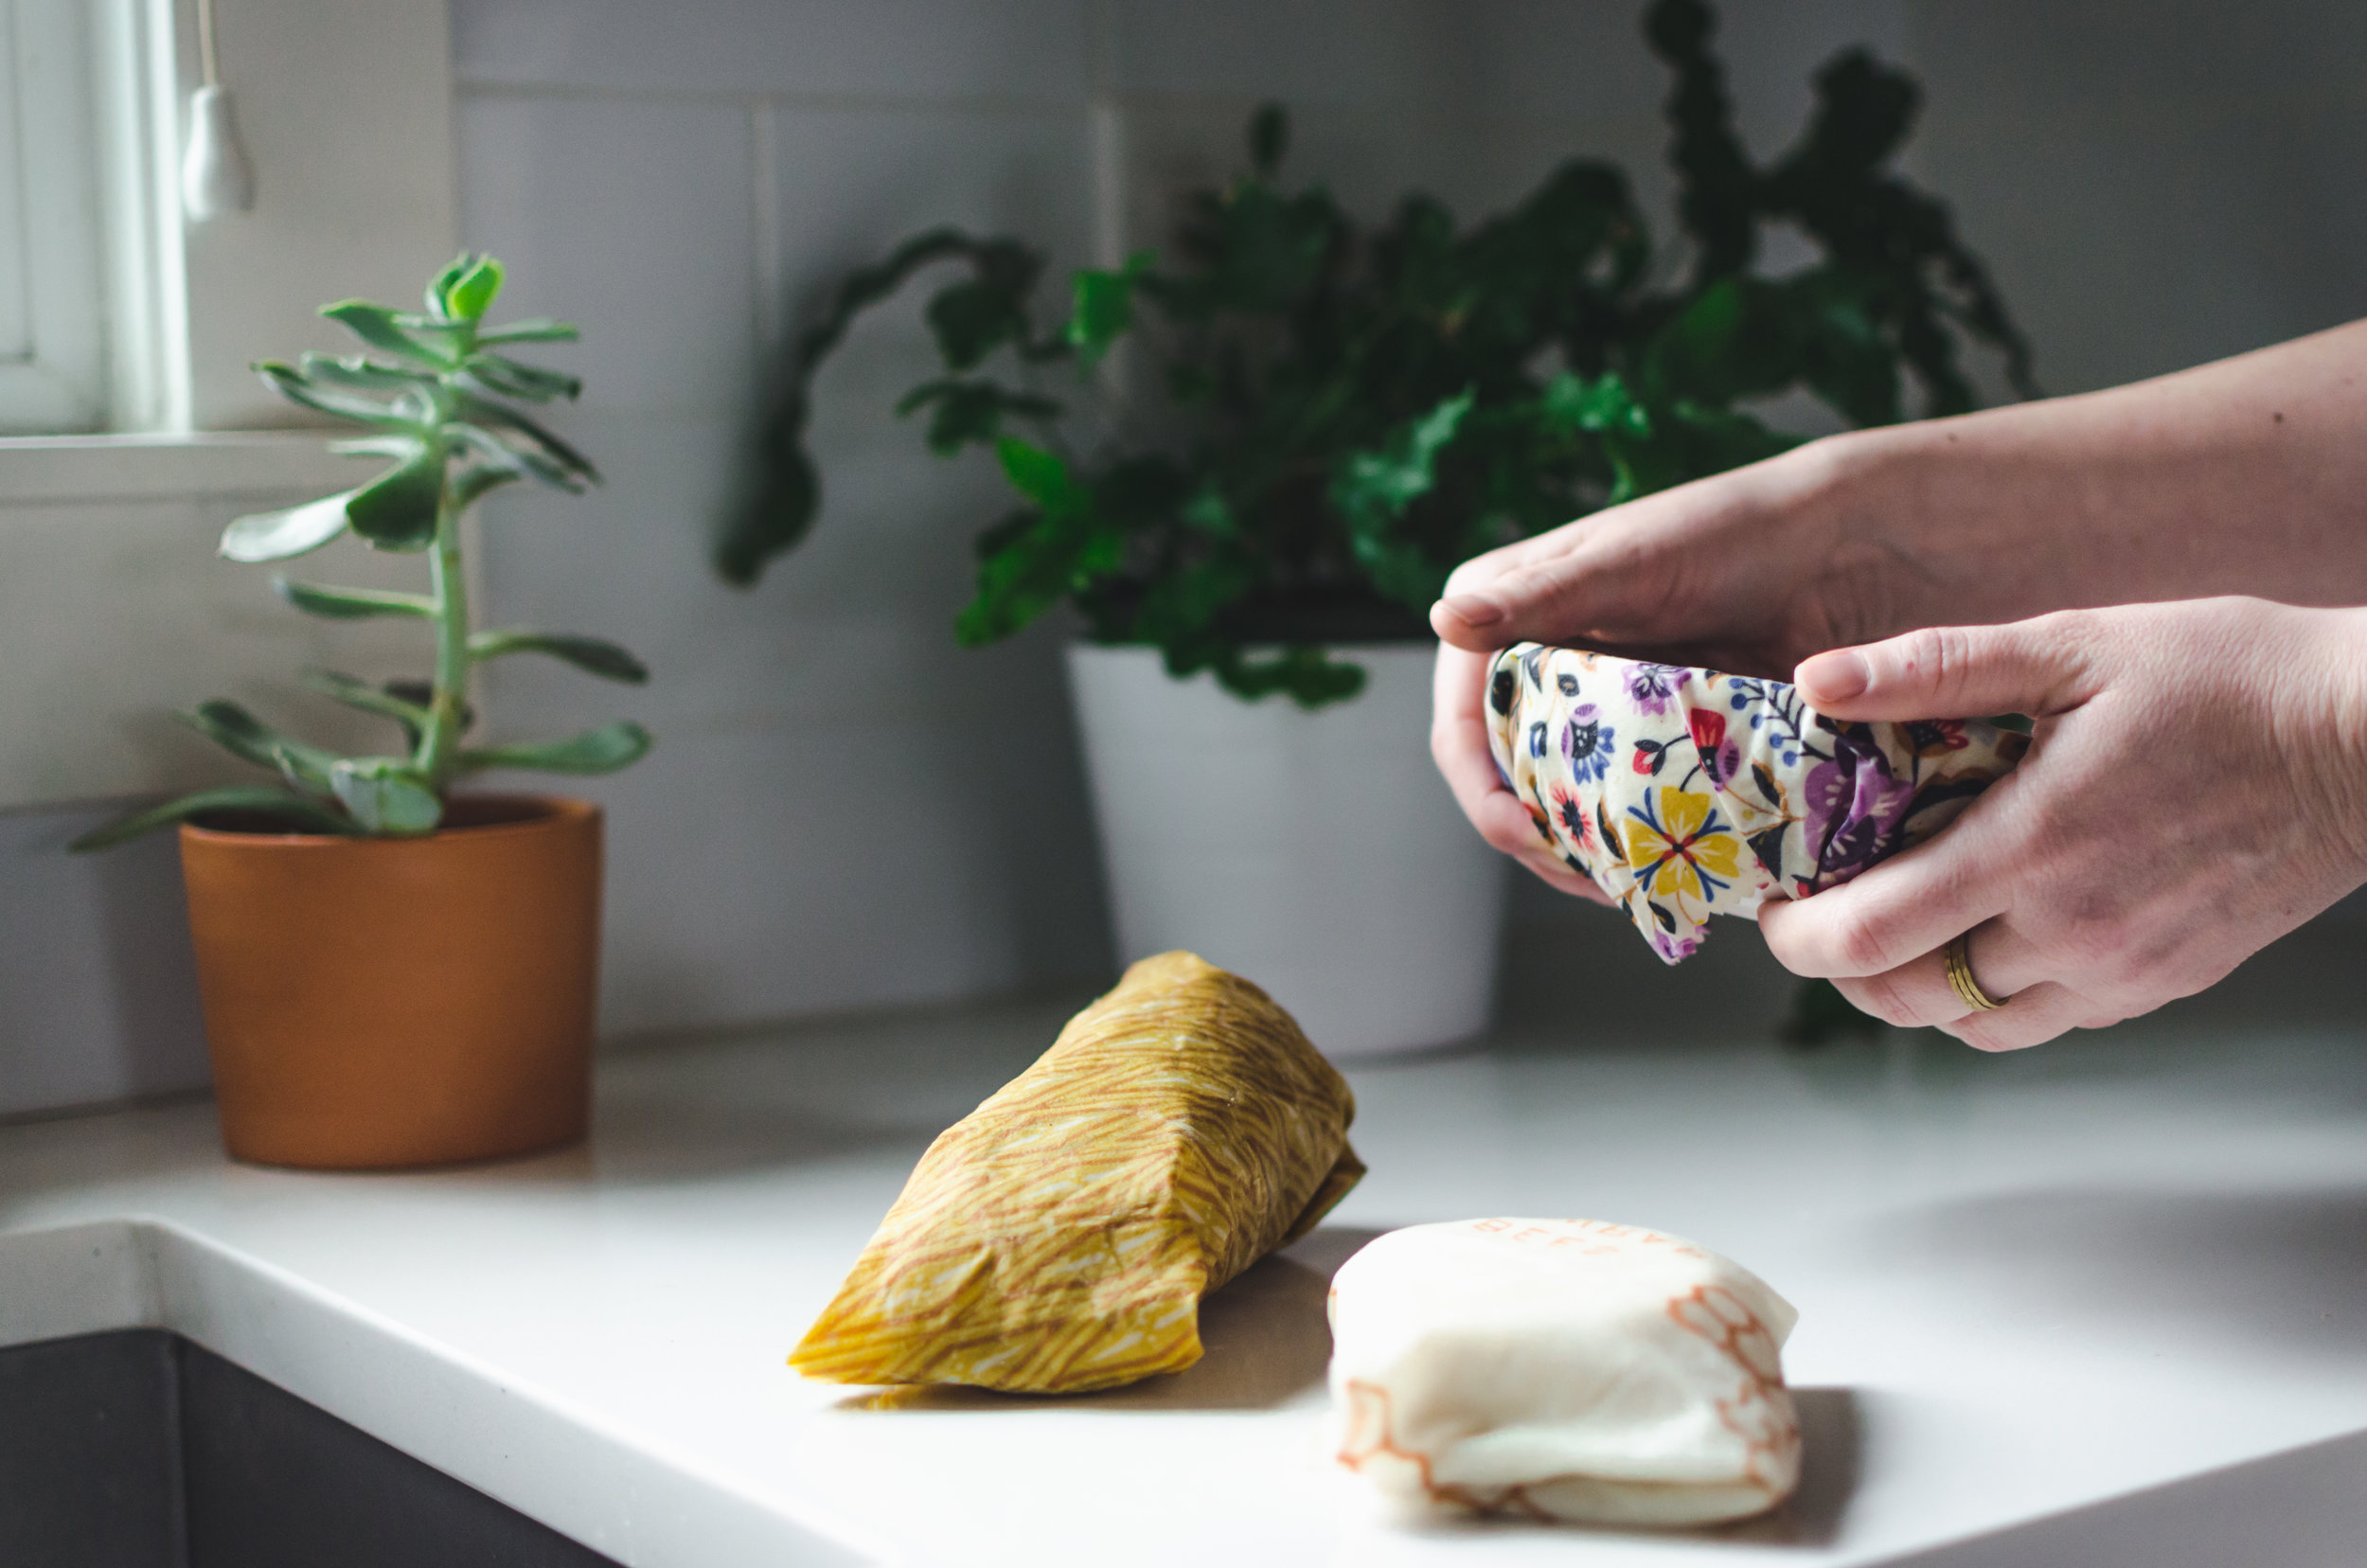 2. Switch to reusable wrap - Ditch the cling wrap, it's wasteful and sometimes hard to use. You can find Bee's Wrap in most supermarkets nowadays, or you can try your hand at making your own using Chloé's tutorial.